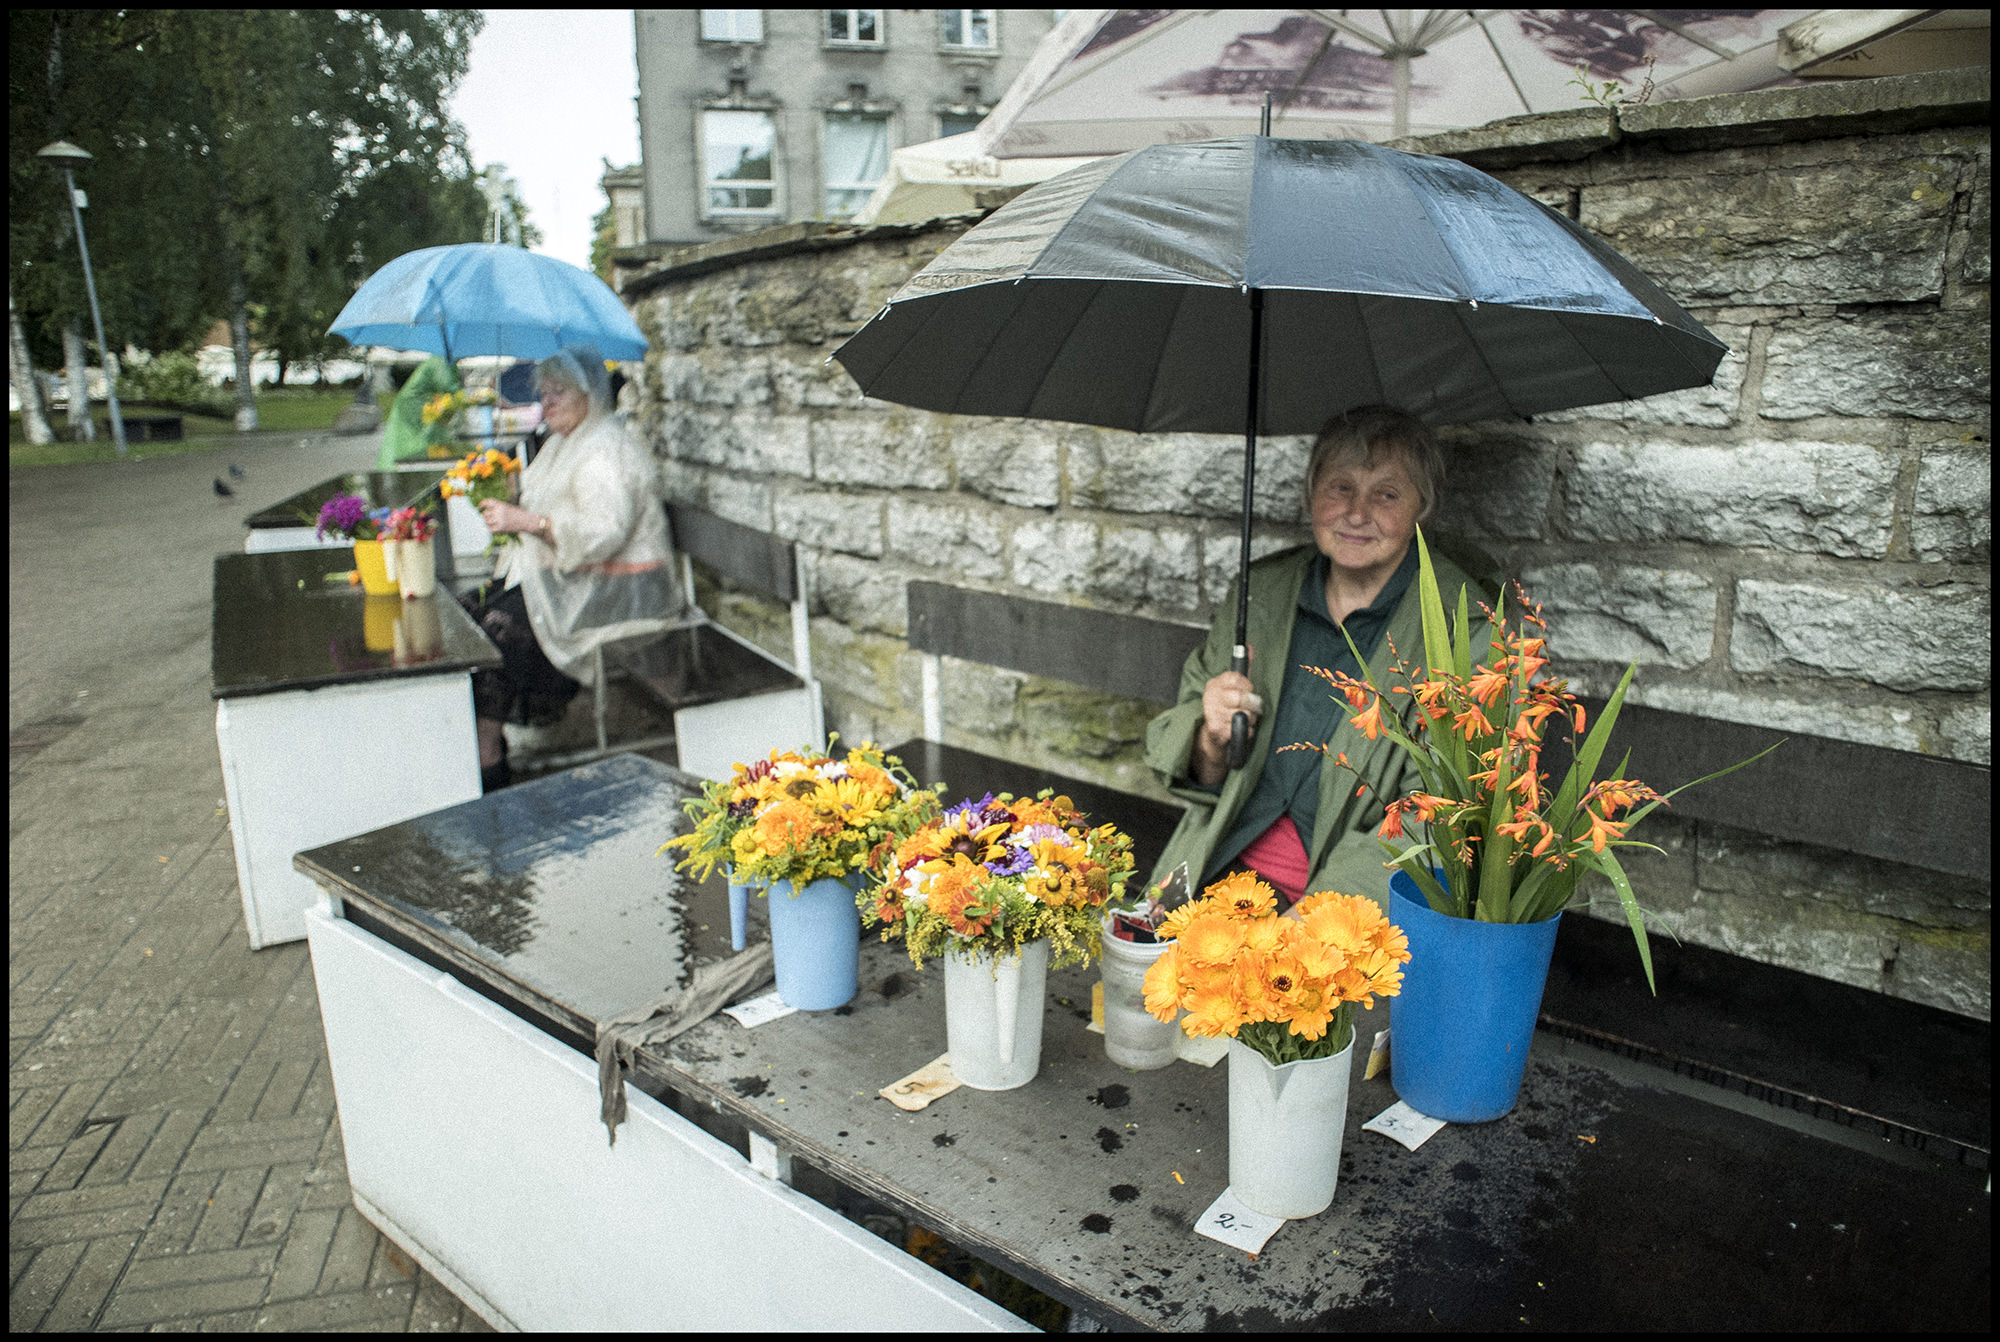 Digital Patrik Wallner Tallinn Rainy Flowers LOWQ 2000P